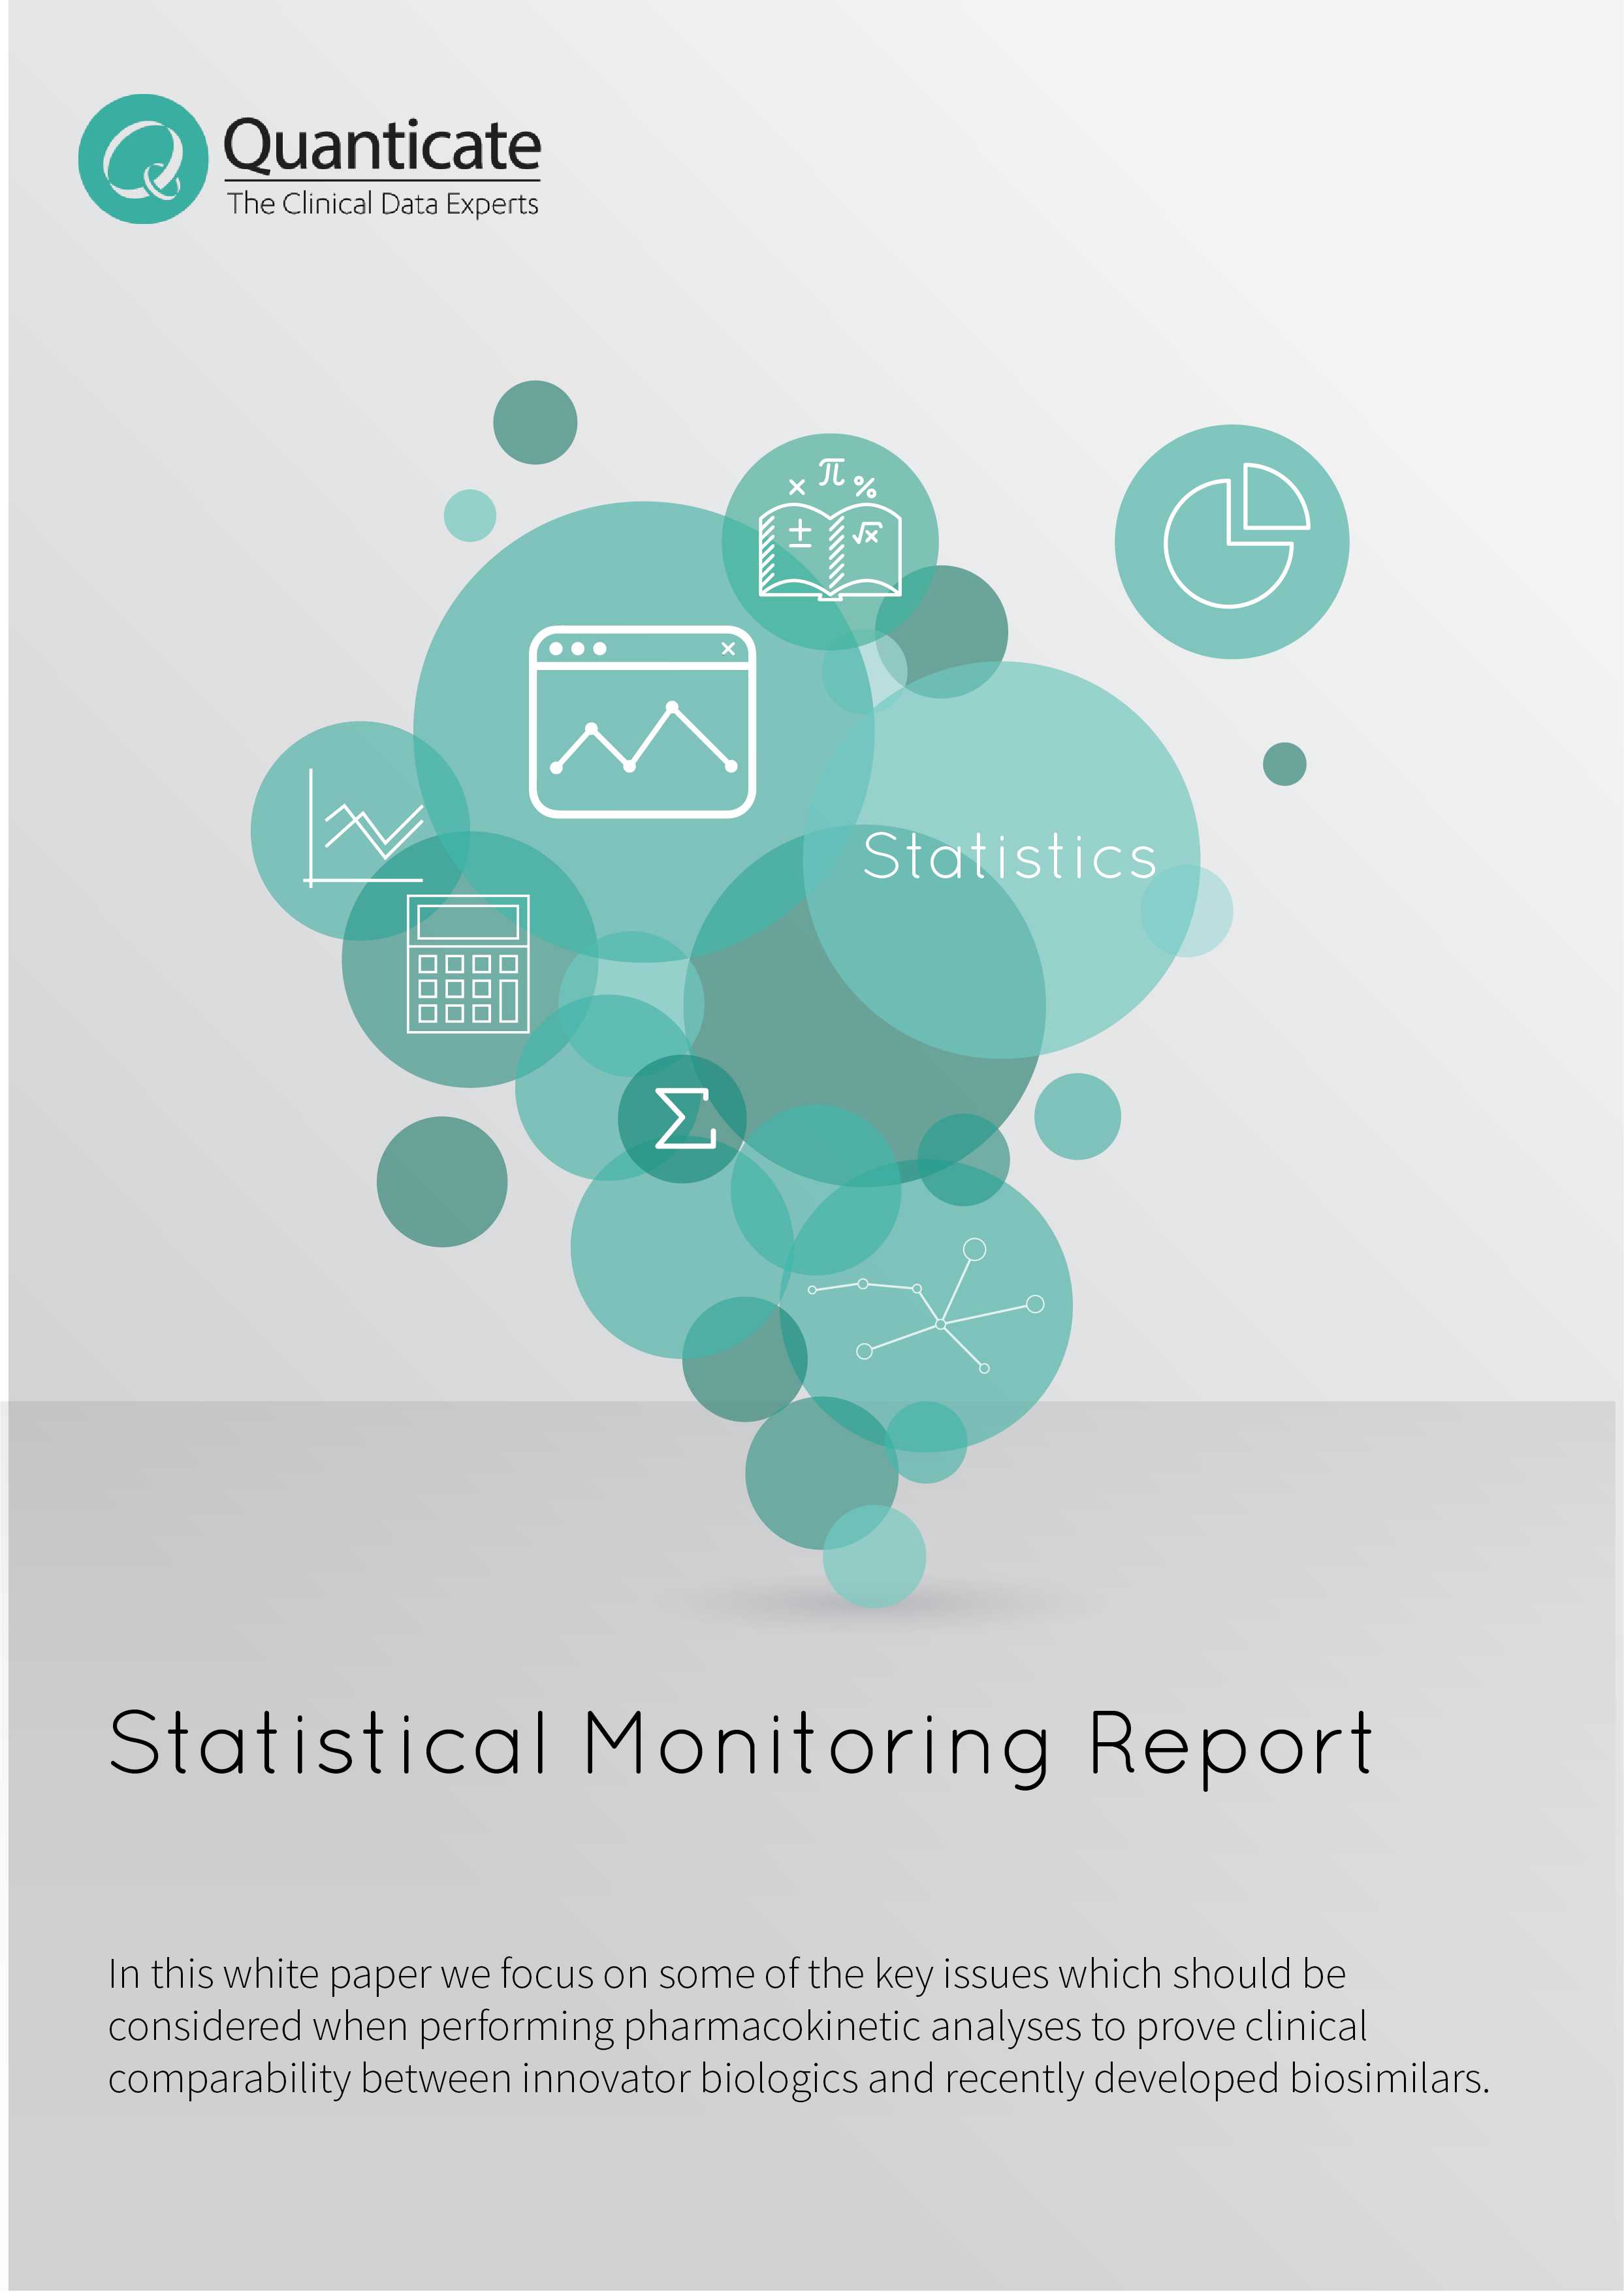 Statistical Monitoring Report